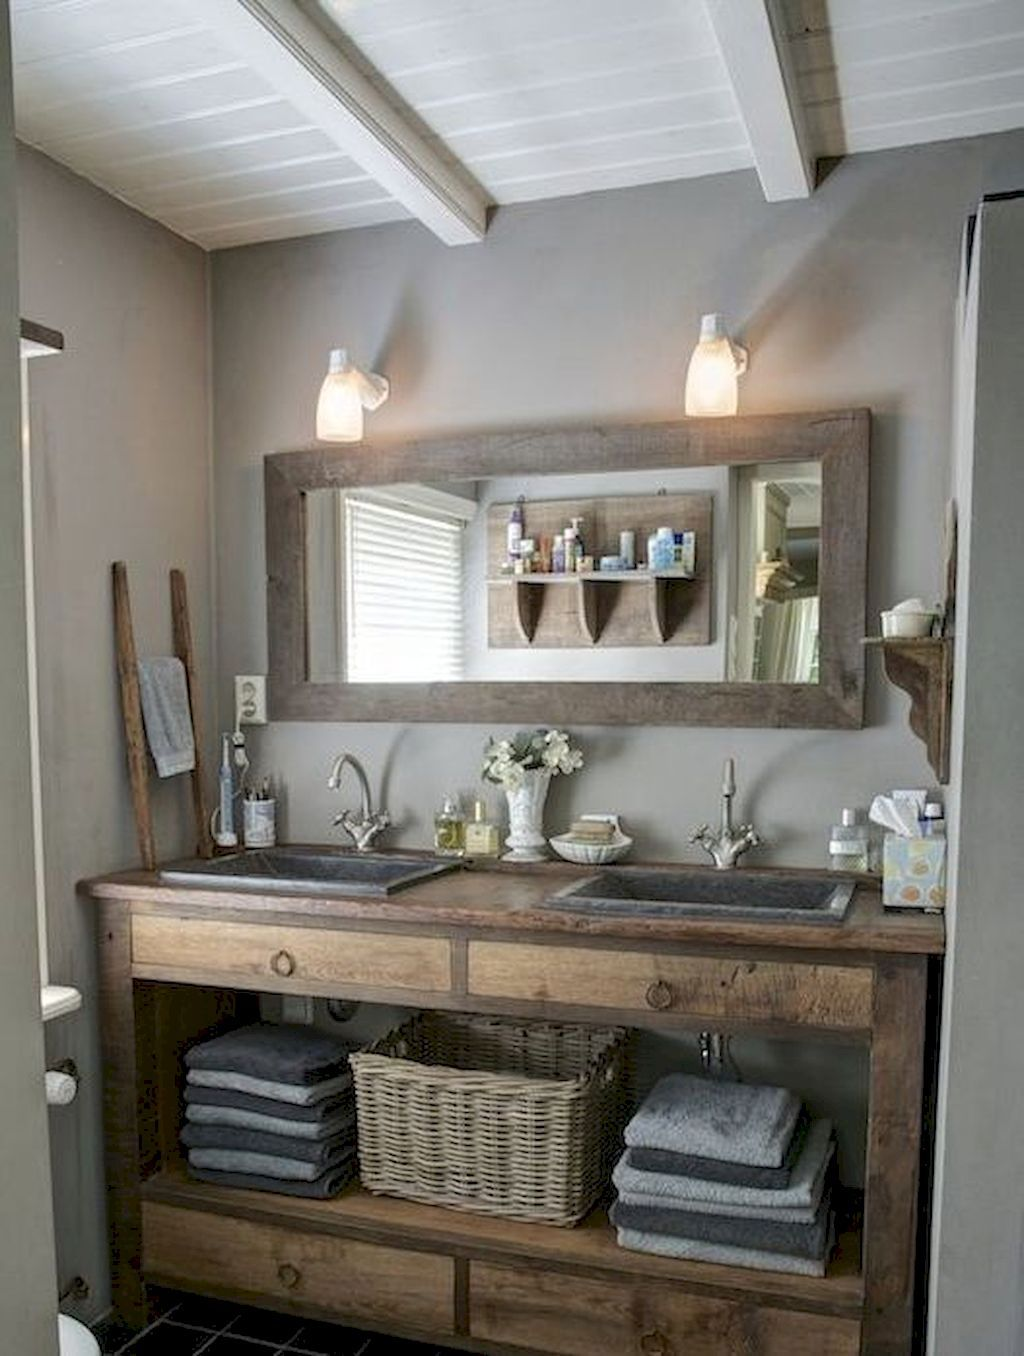 50 Easy Bathroom Remodel Organization Ideas You Must Try